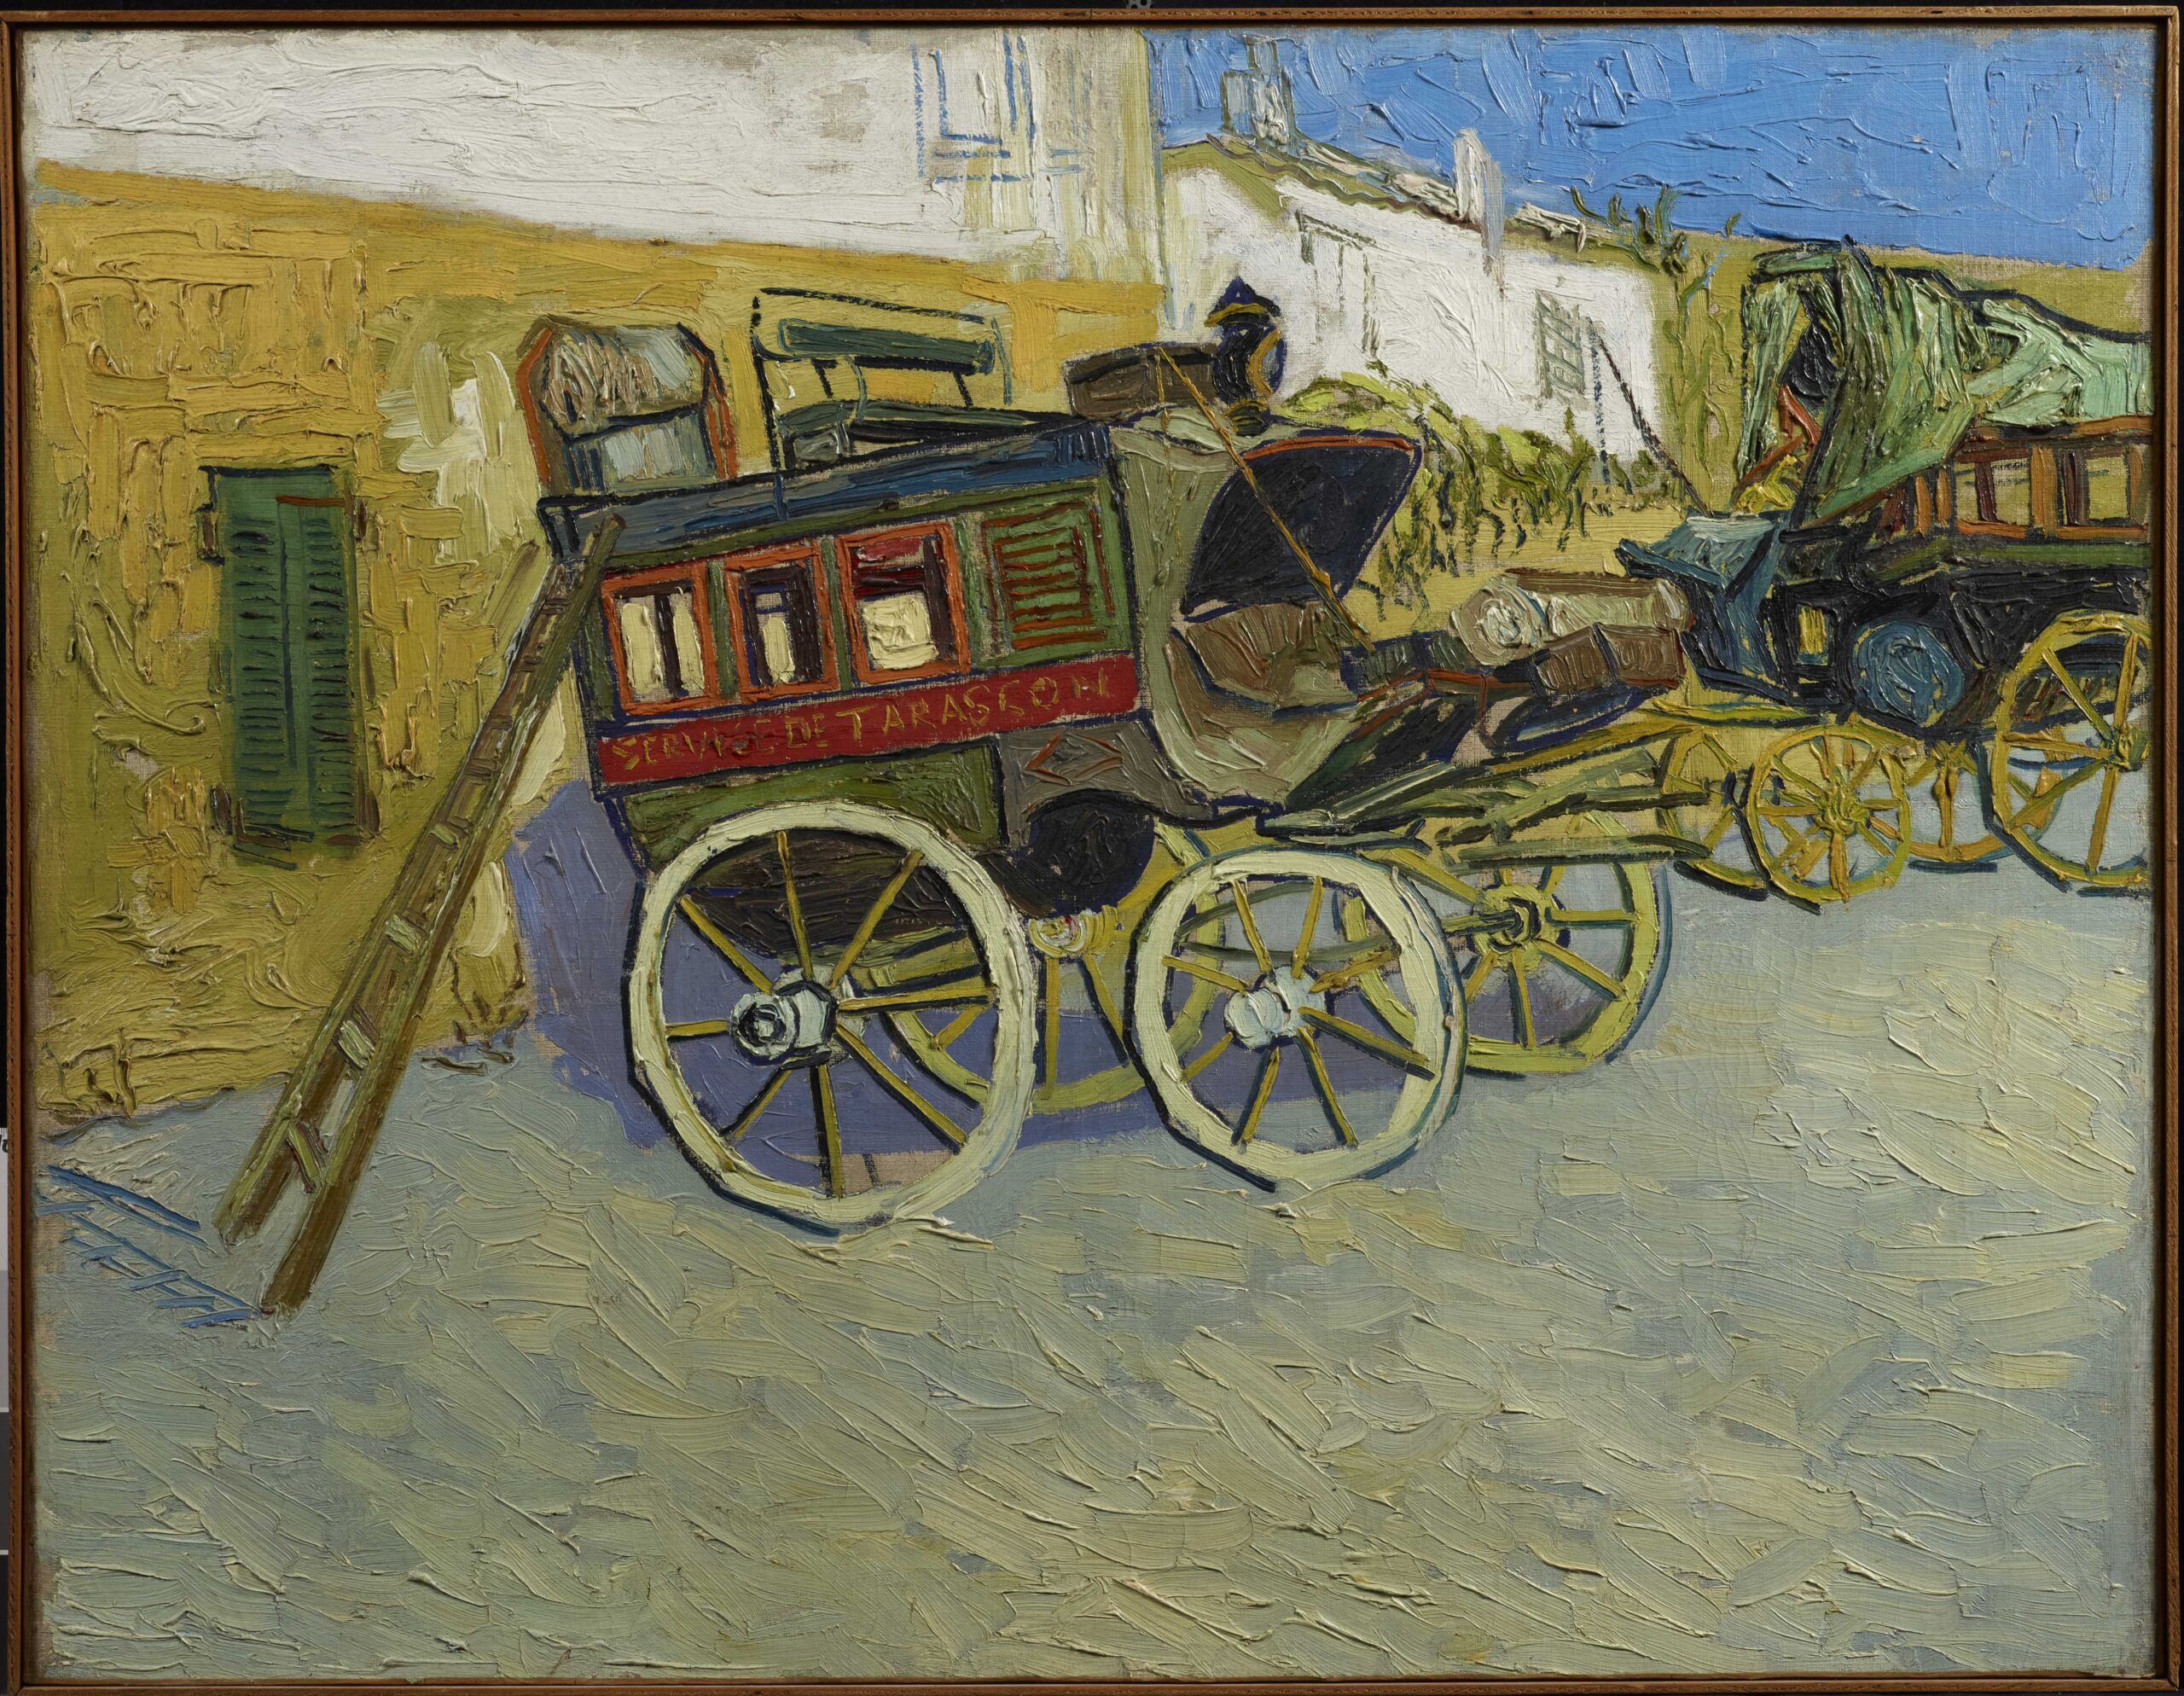 Vincent van Gogh (Dutch, 1853–1890), Tarascon Stagecoach, 1888. Oil on canvas, 28 1⁄8 × 36 7/16 in. The Henry and Rose Pearlman Foundation, on loan since 1976 to the Princeton University Art Museum, L.1988.62.11. Photo: Bruce White.